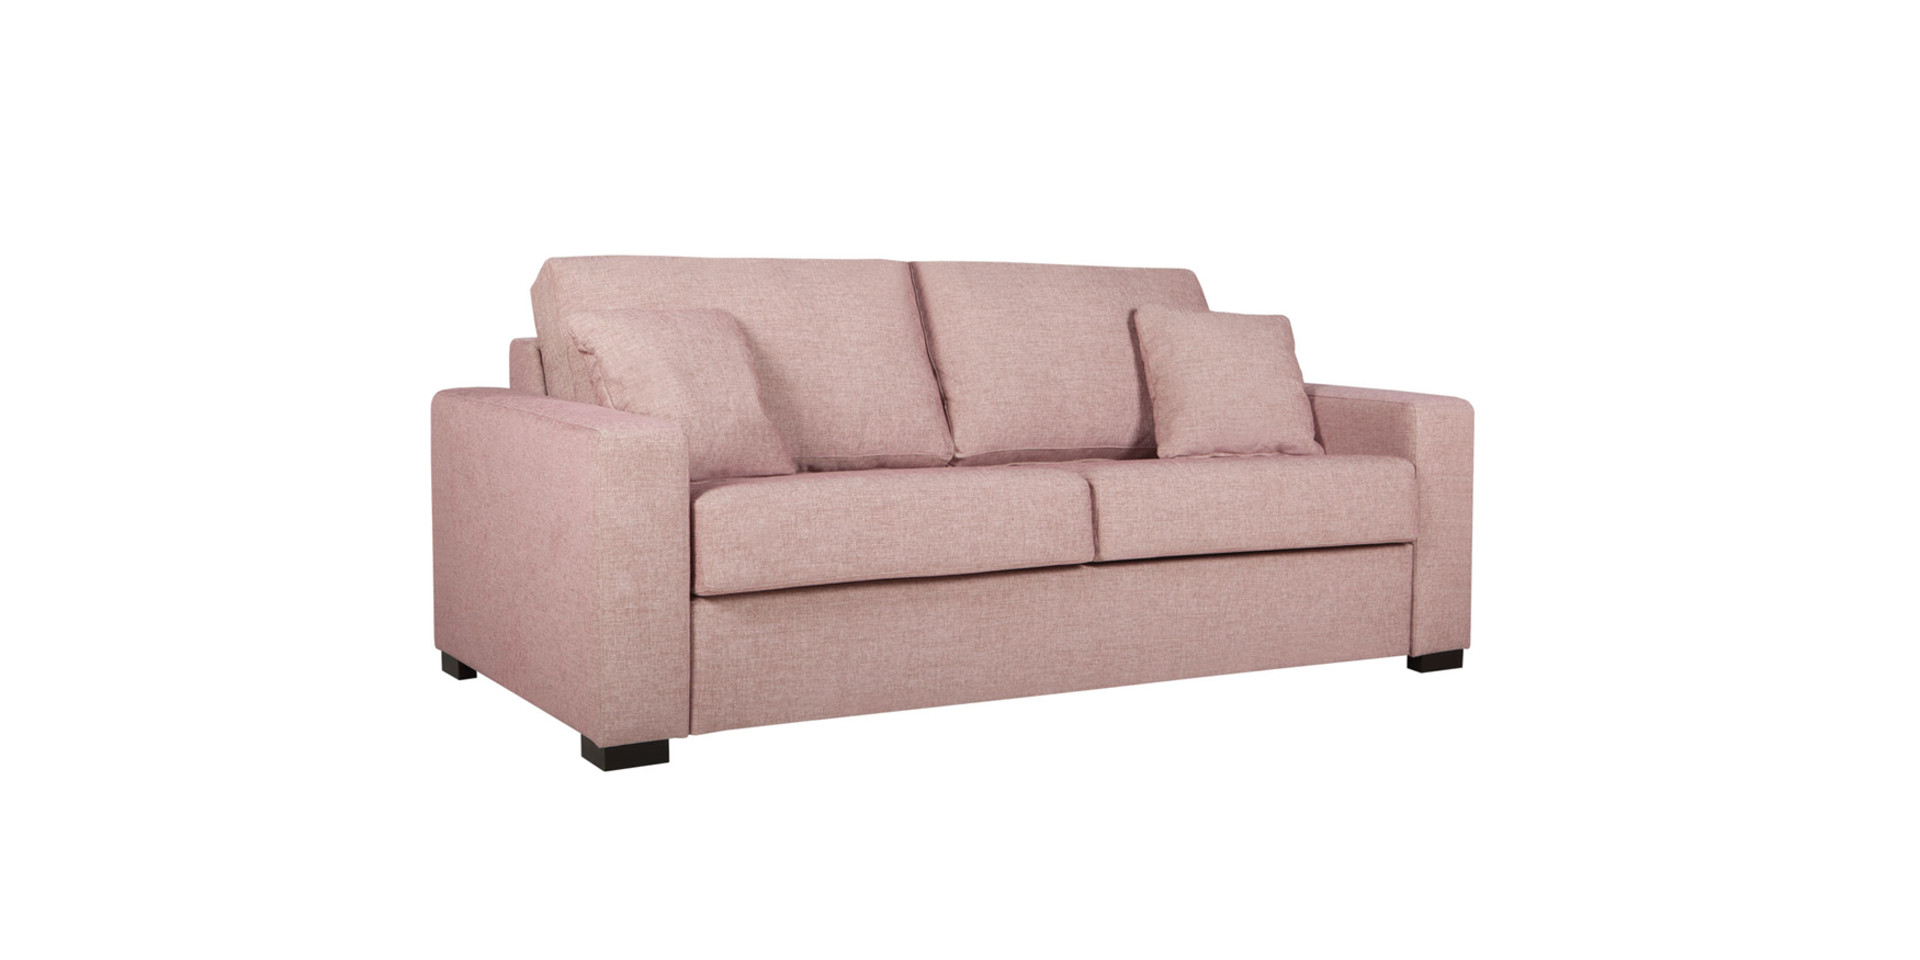 sits-lukas-canape-convertible-sofa_bed3_divine61_pink_2